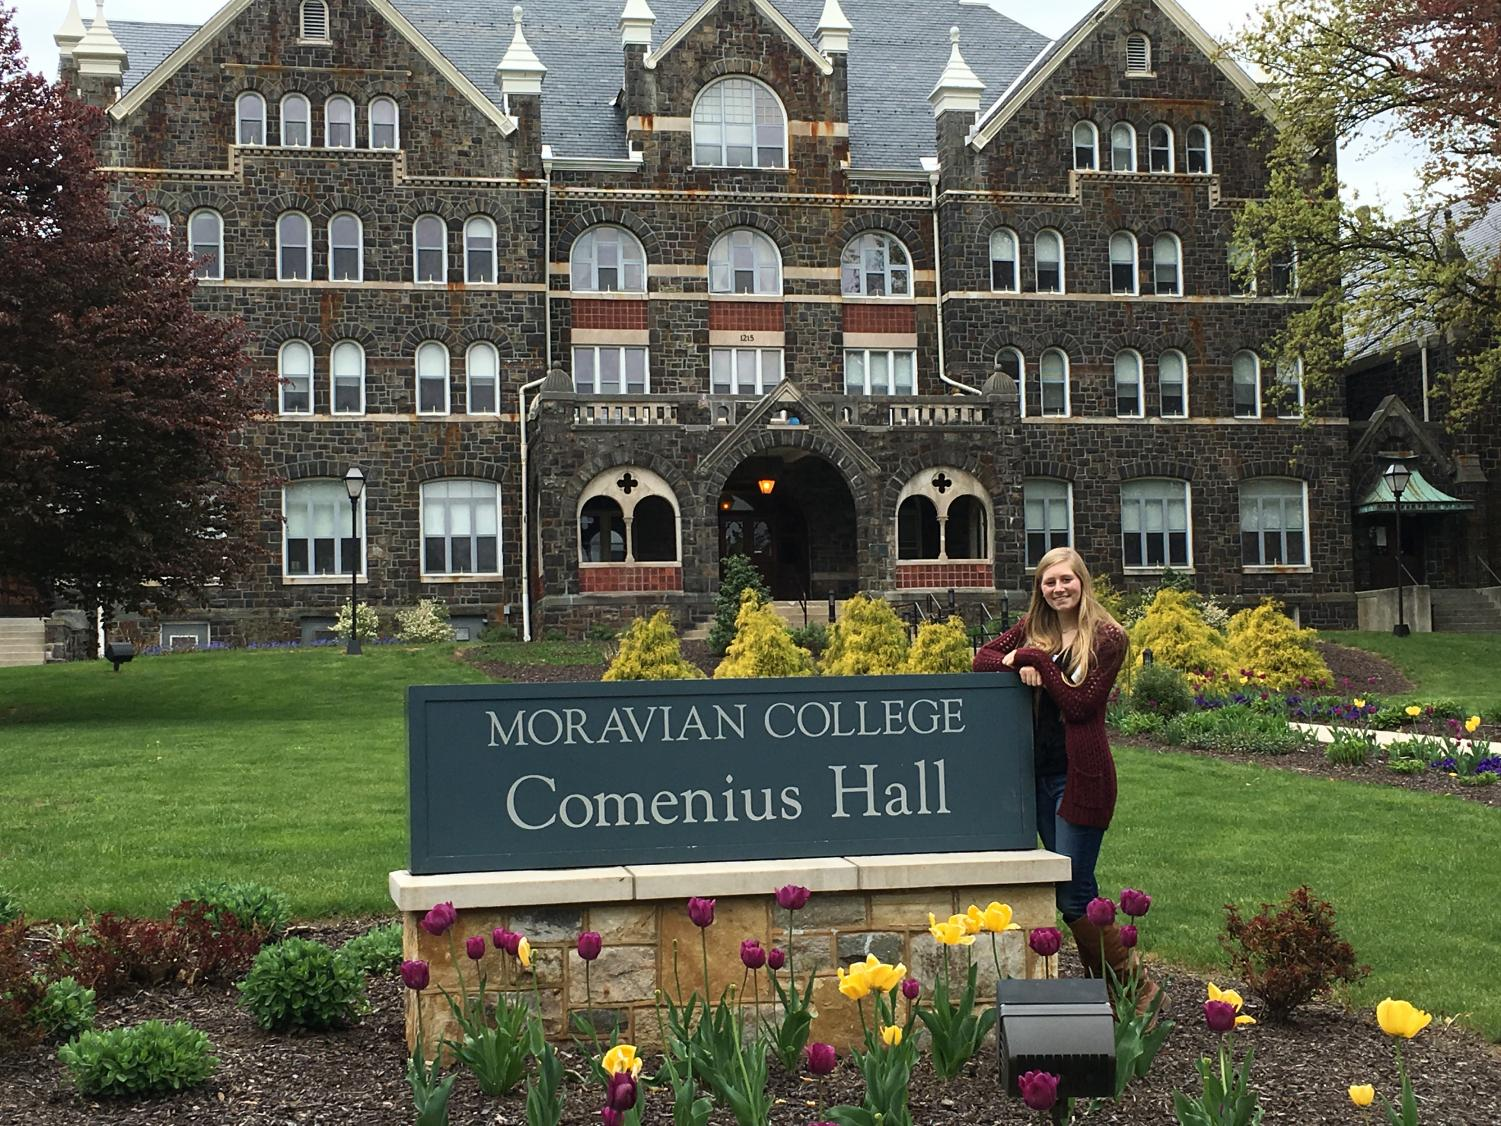 Editor-In-Chief Elizabeth Horn visiting Moravian College for the first time in 2016.